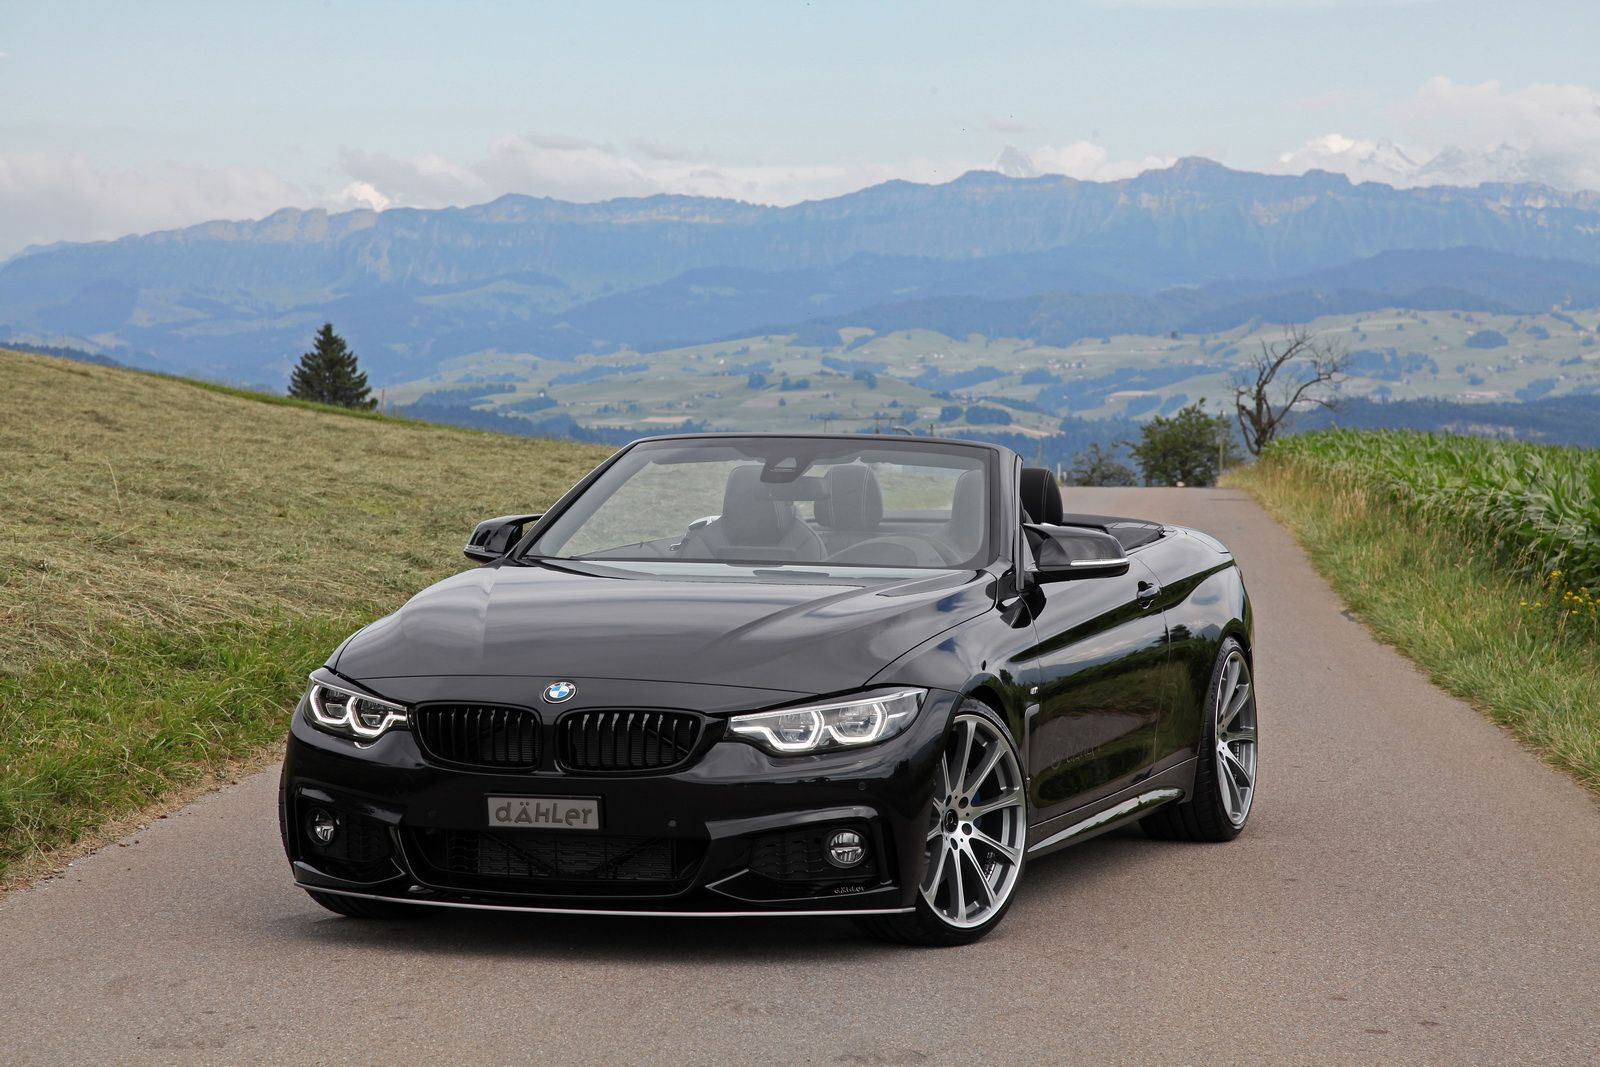 Make Your Bmw 440i More M Like With Dahler S Tuning Goods Carscoops Bmw Bmw Convertible Bmw 4 Series 2017 bmw 430i cabrio luxury line 4k